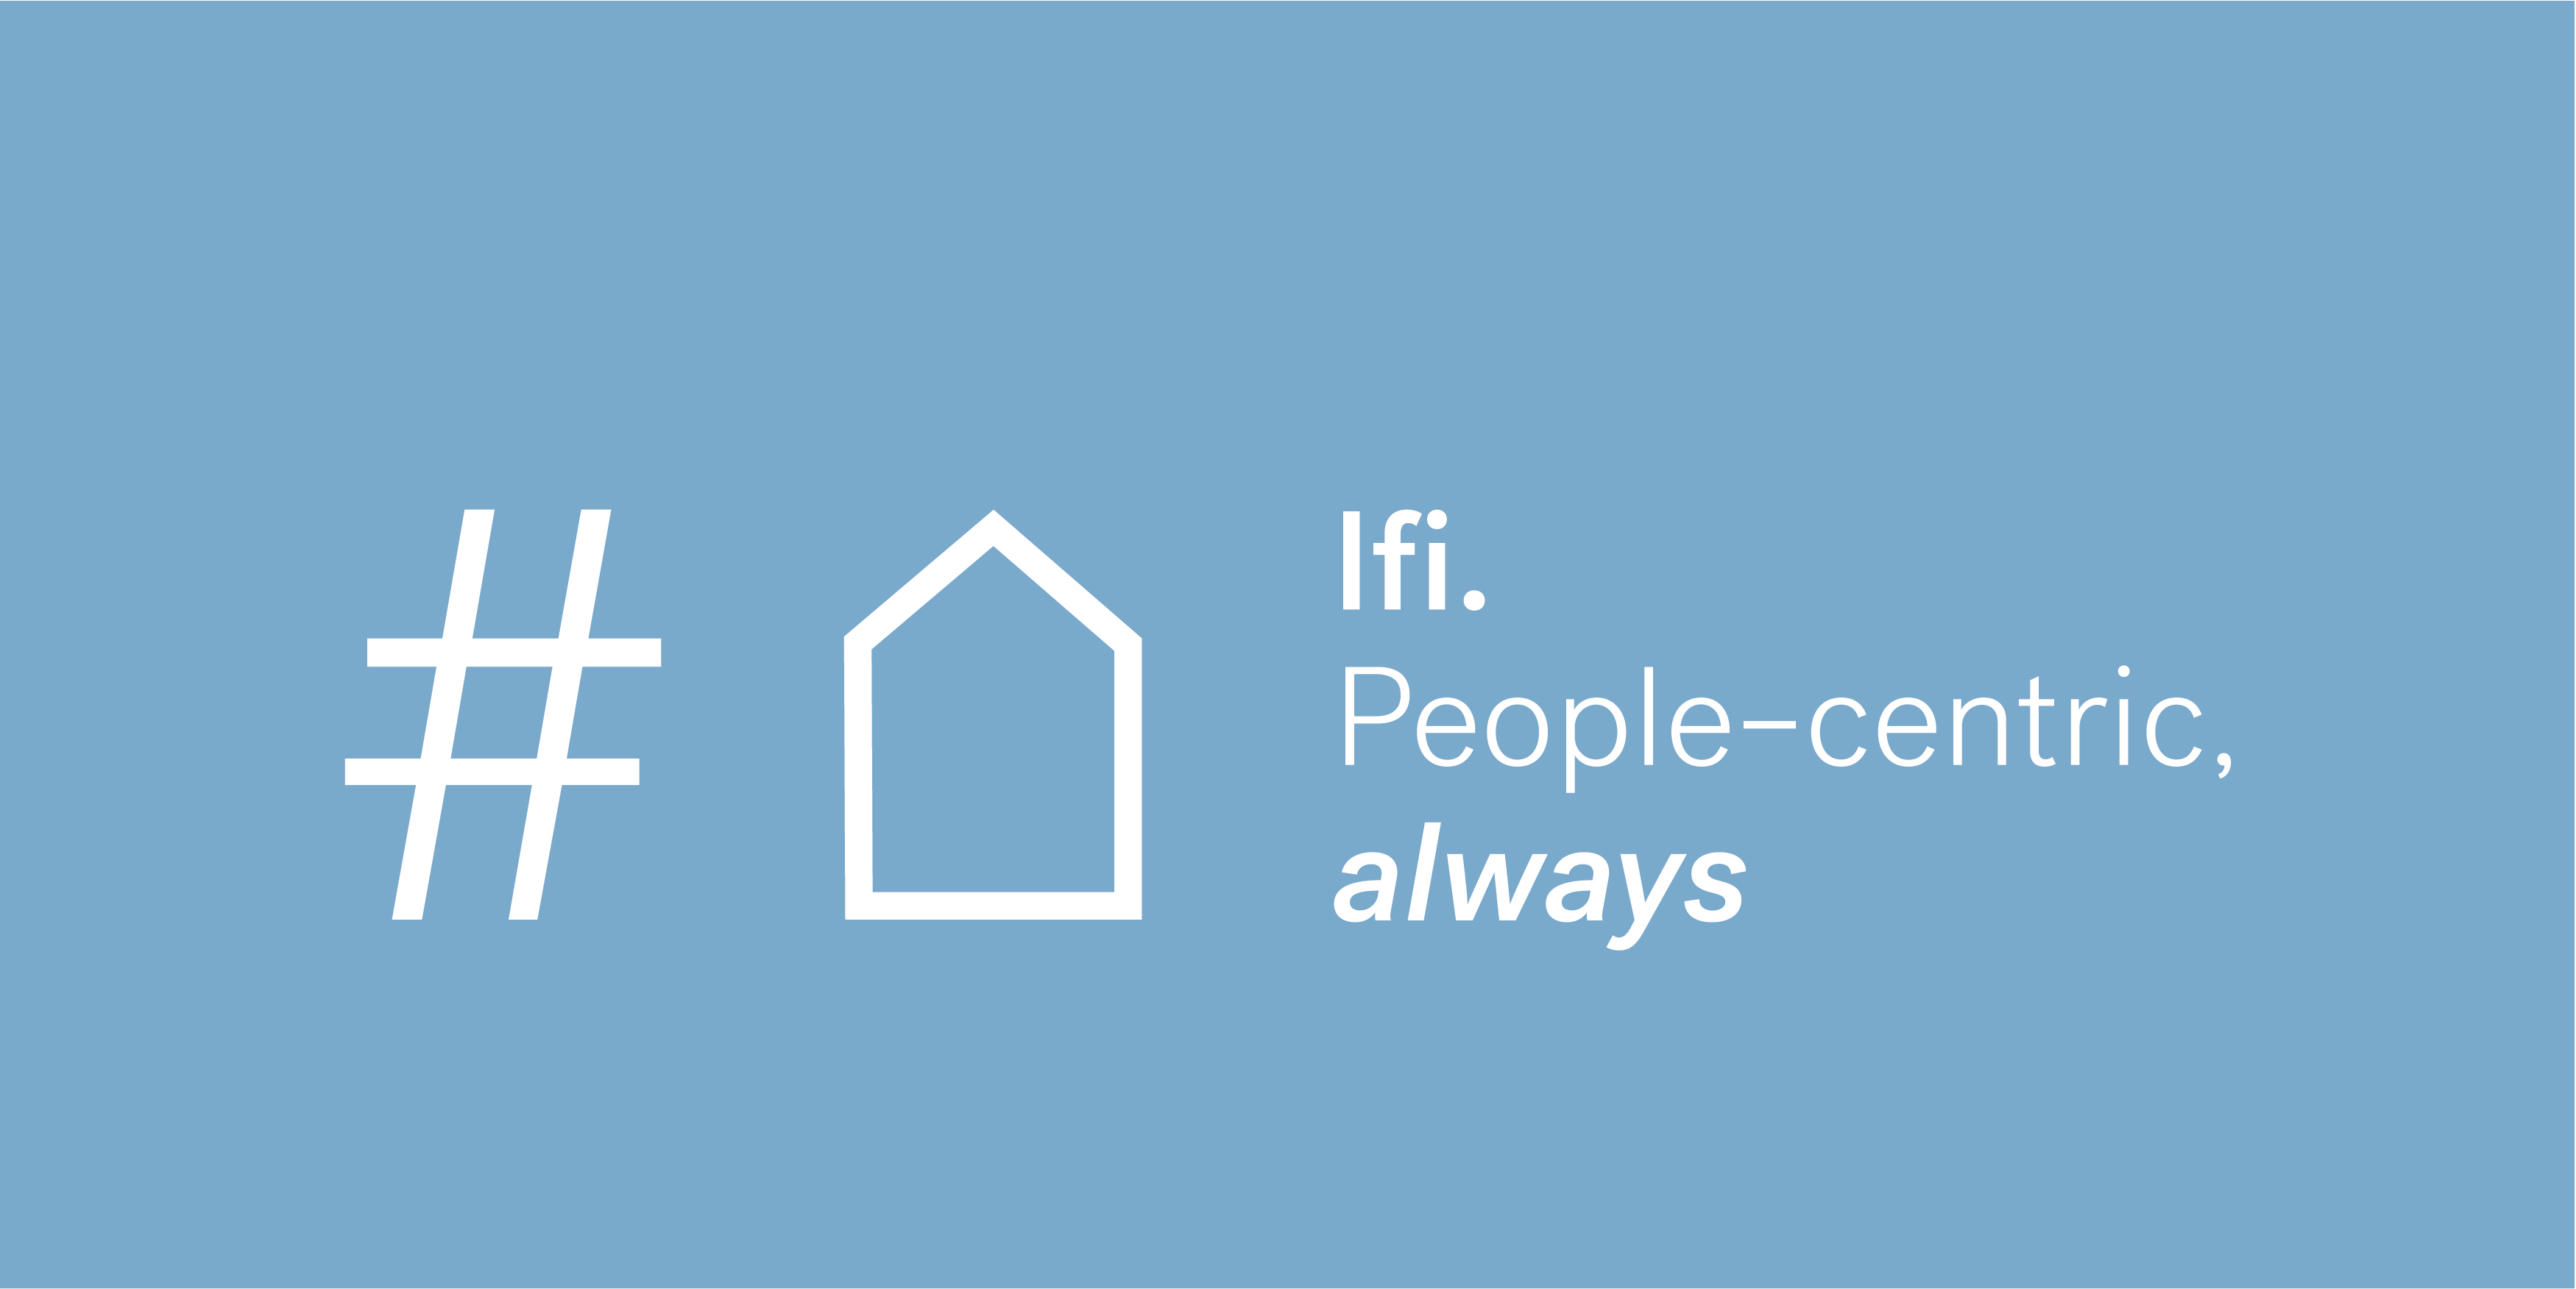 Ifi-people-centric-always